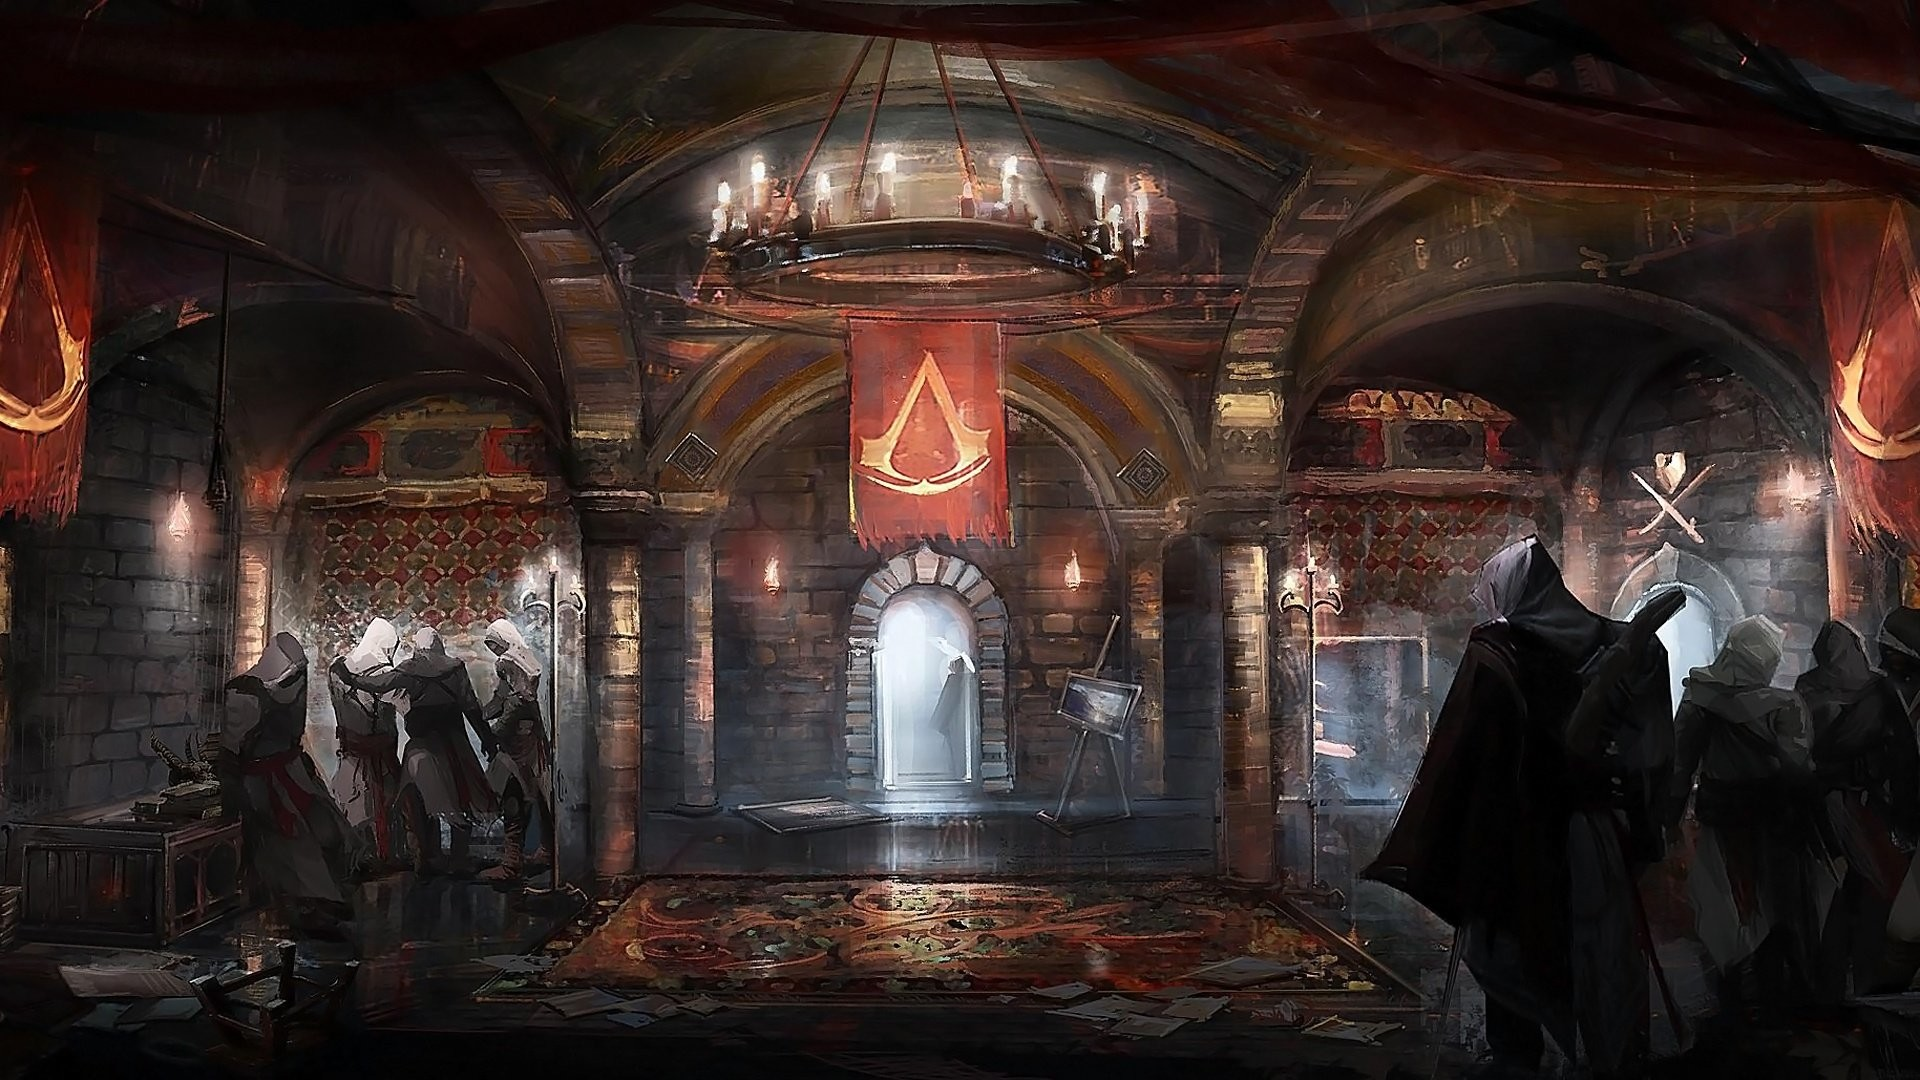 1920x1080 Wallpaper zu Assassin's Creed: Brotherhood herunterladen